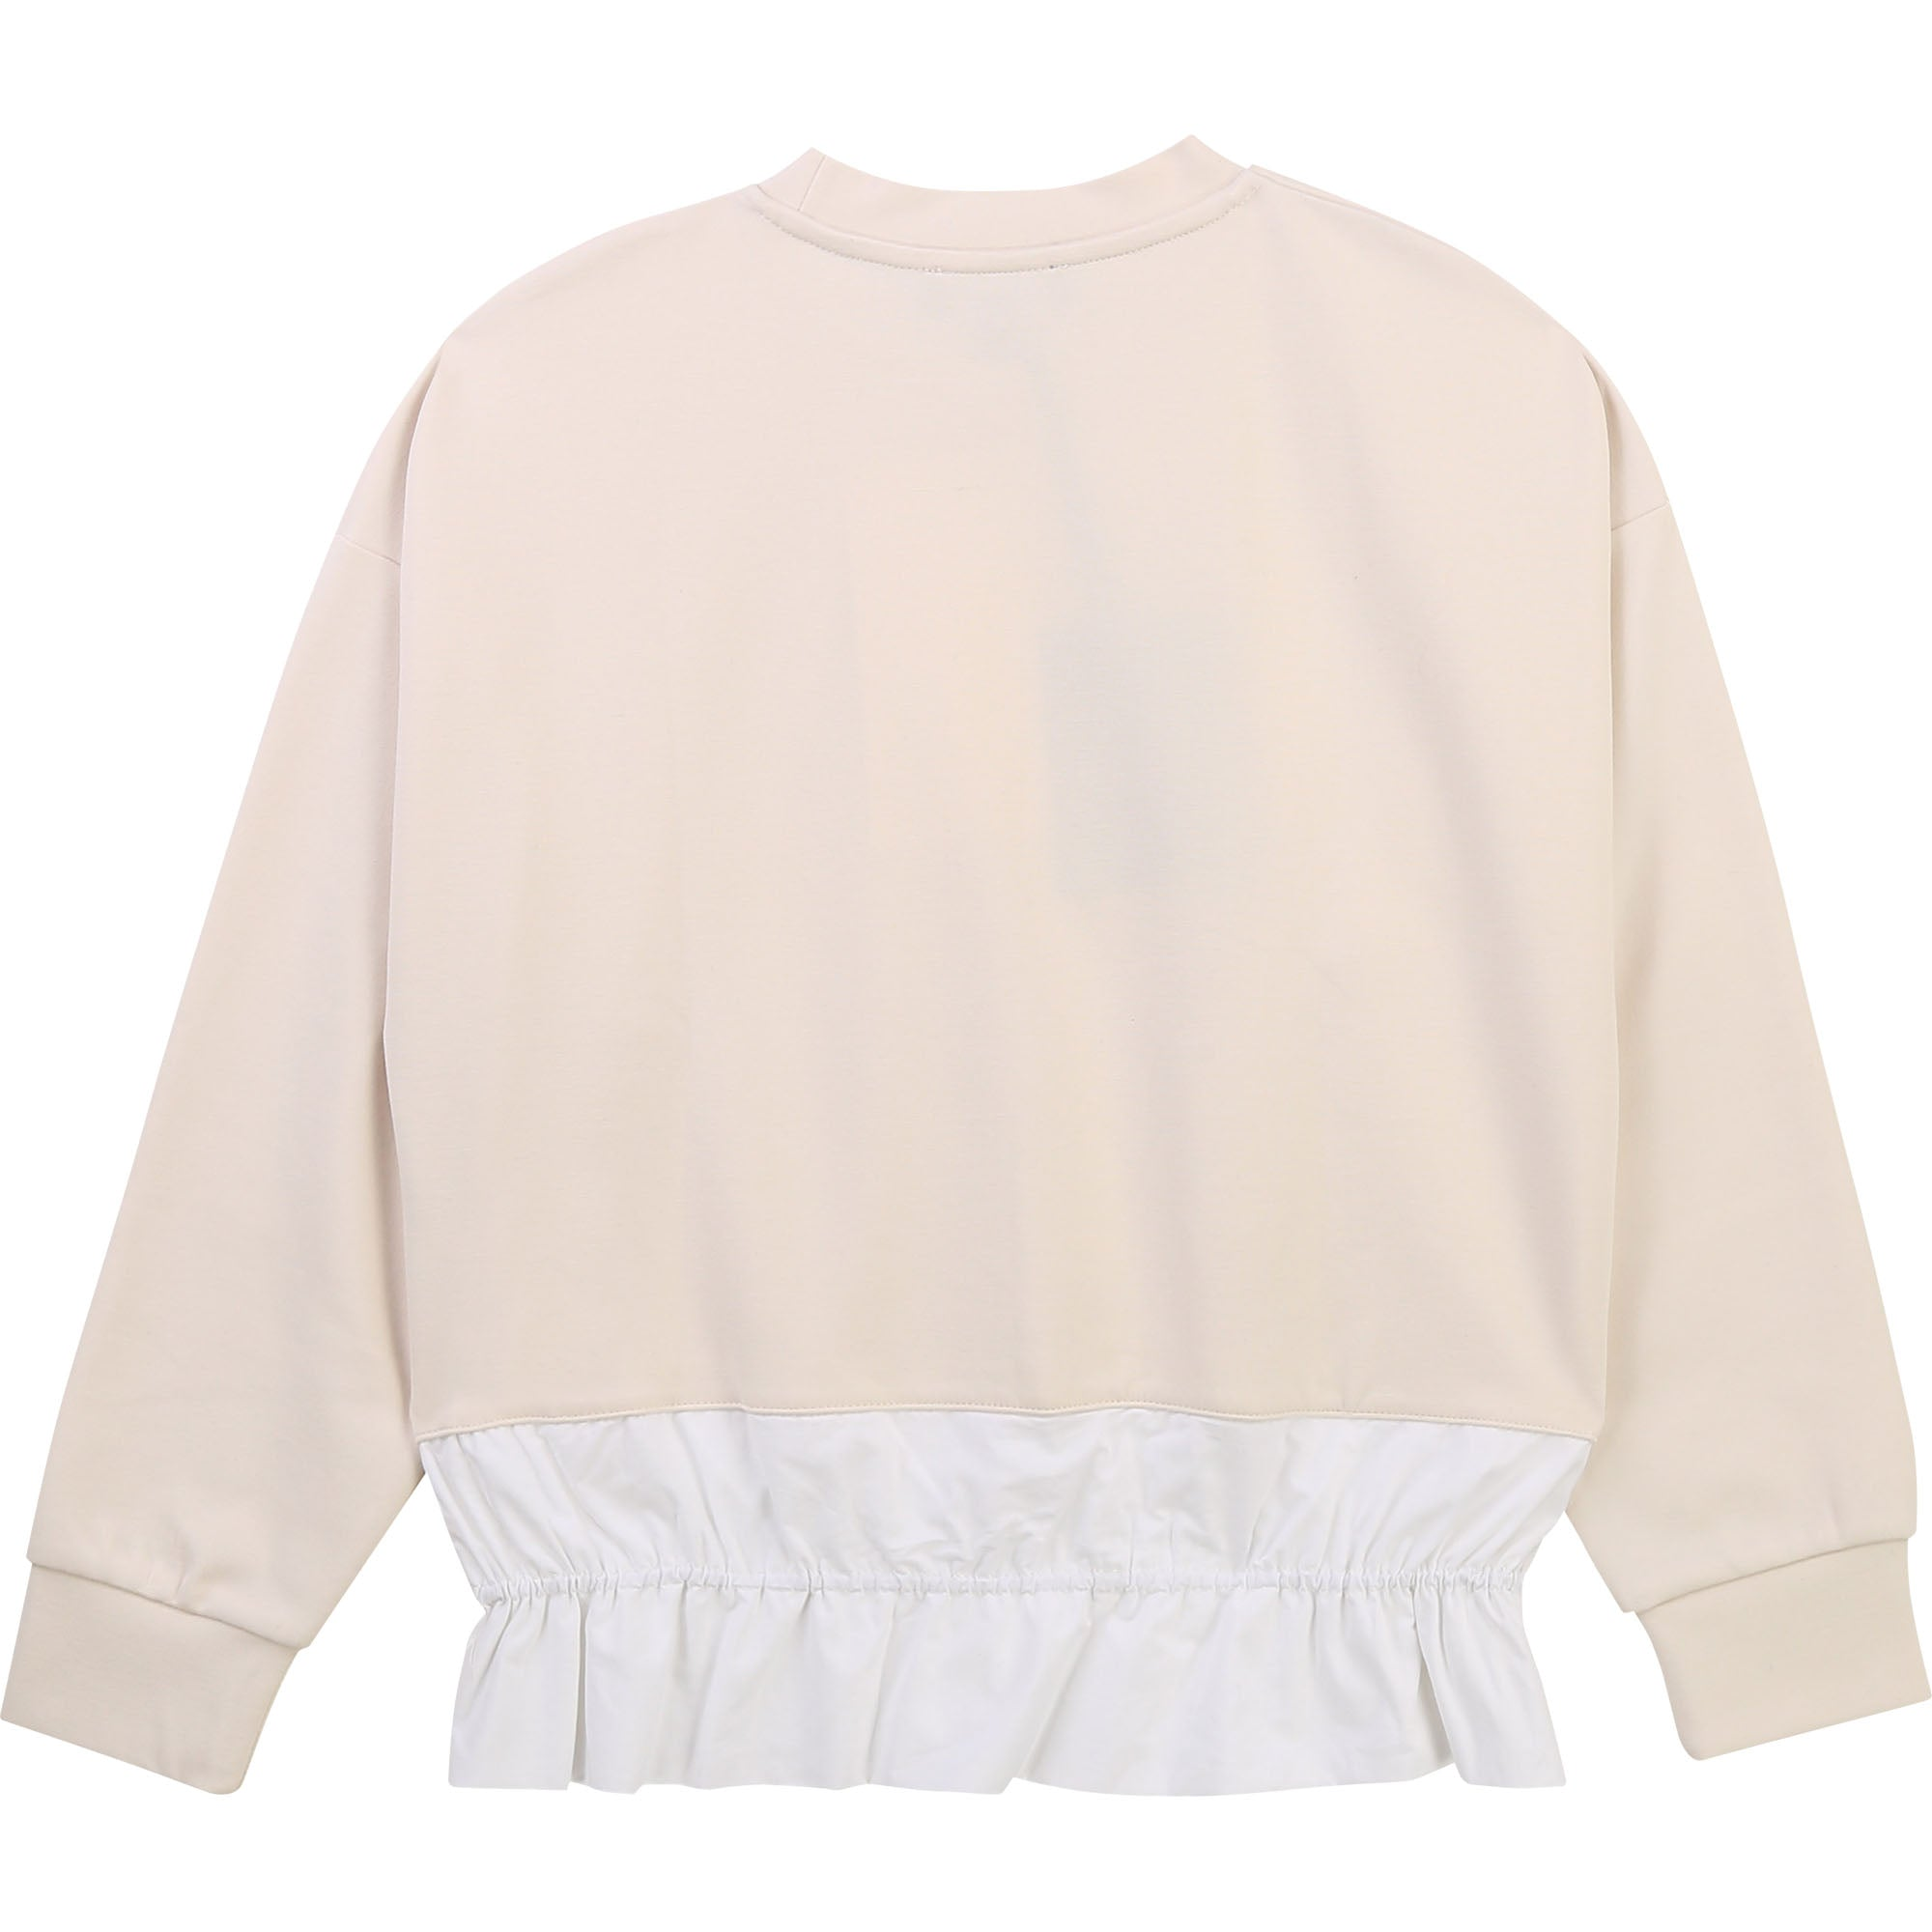 DKNY D35R37 GIRLS  WHITE FANCY SWEATSHIRT